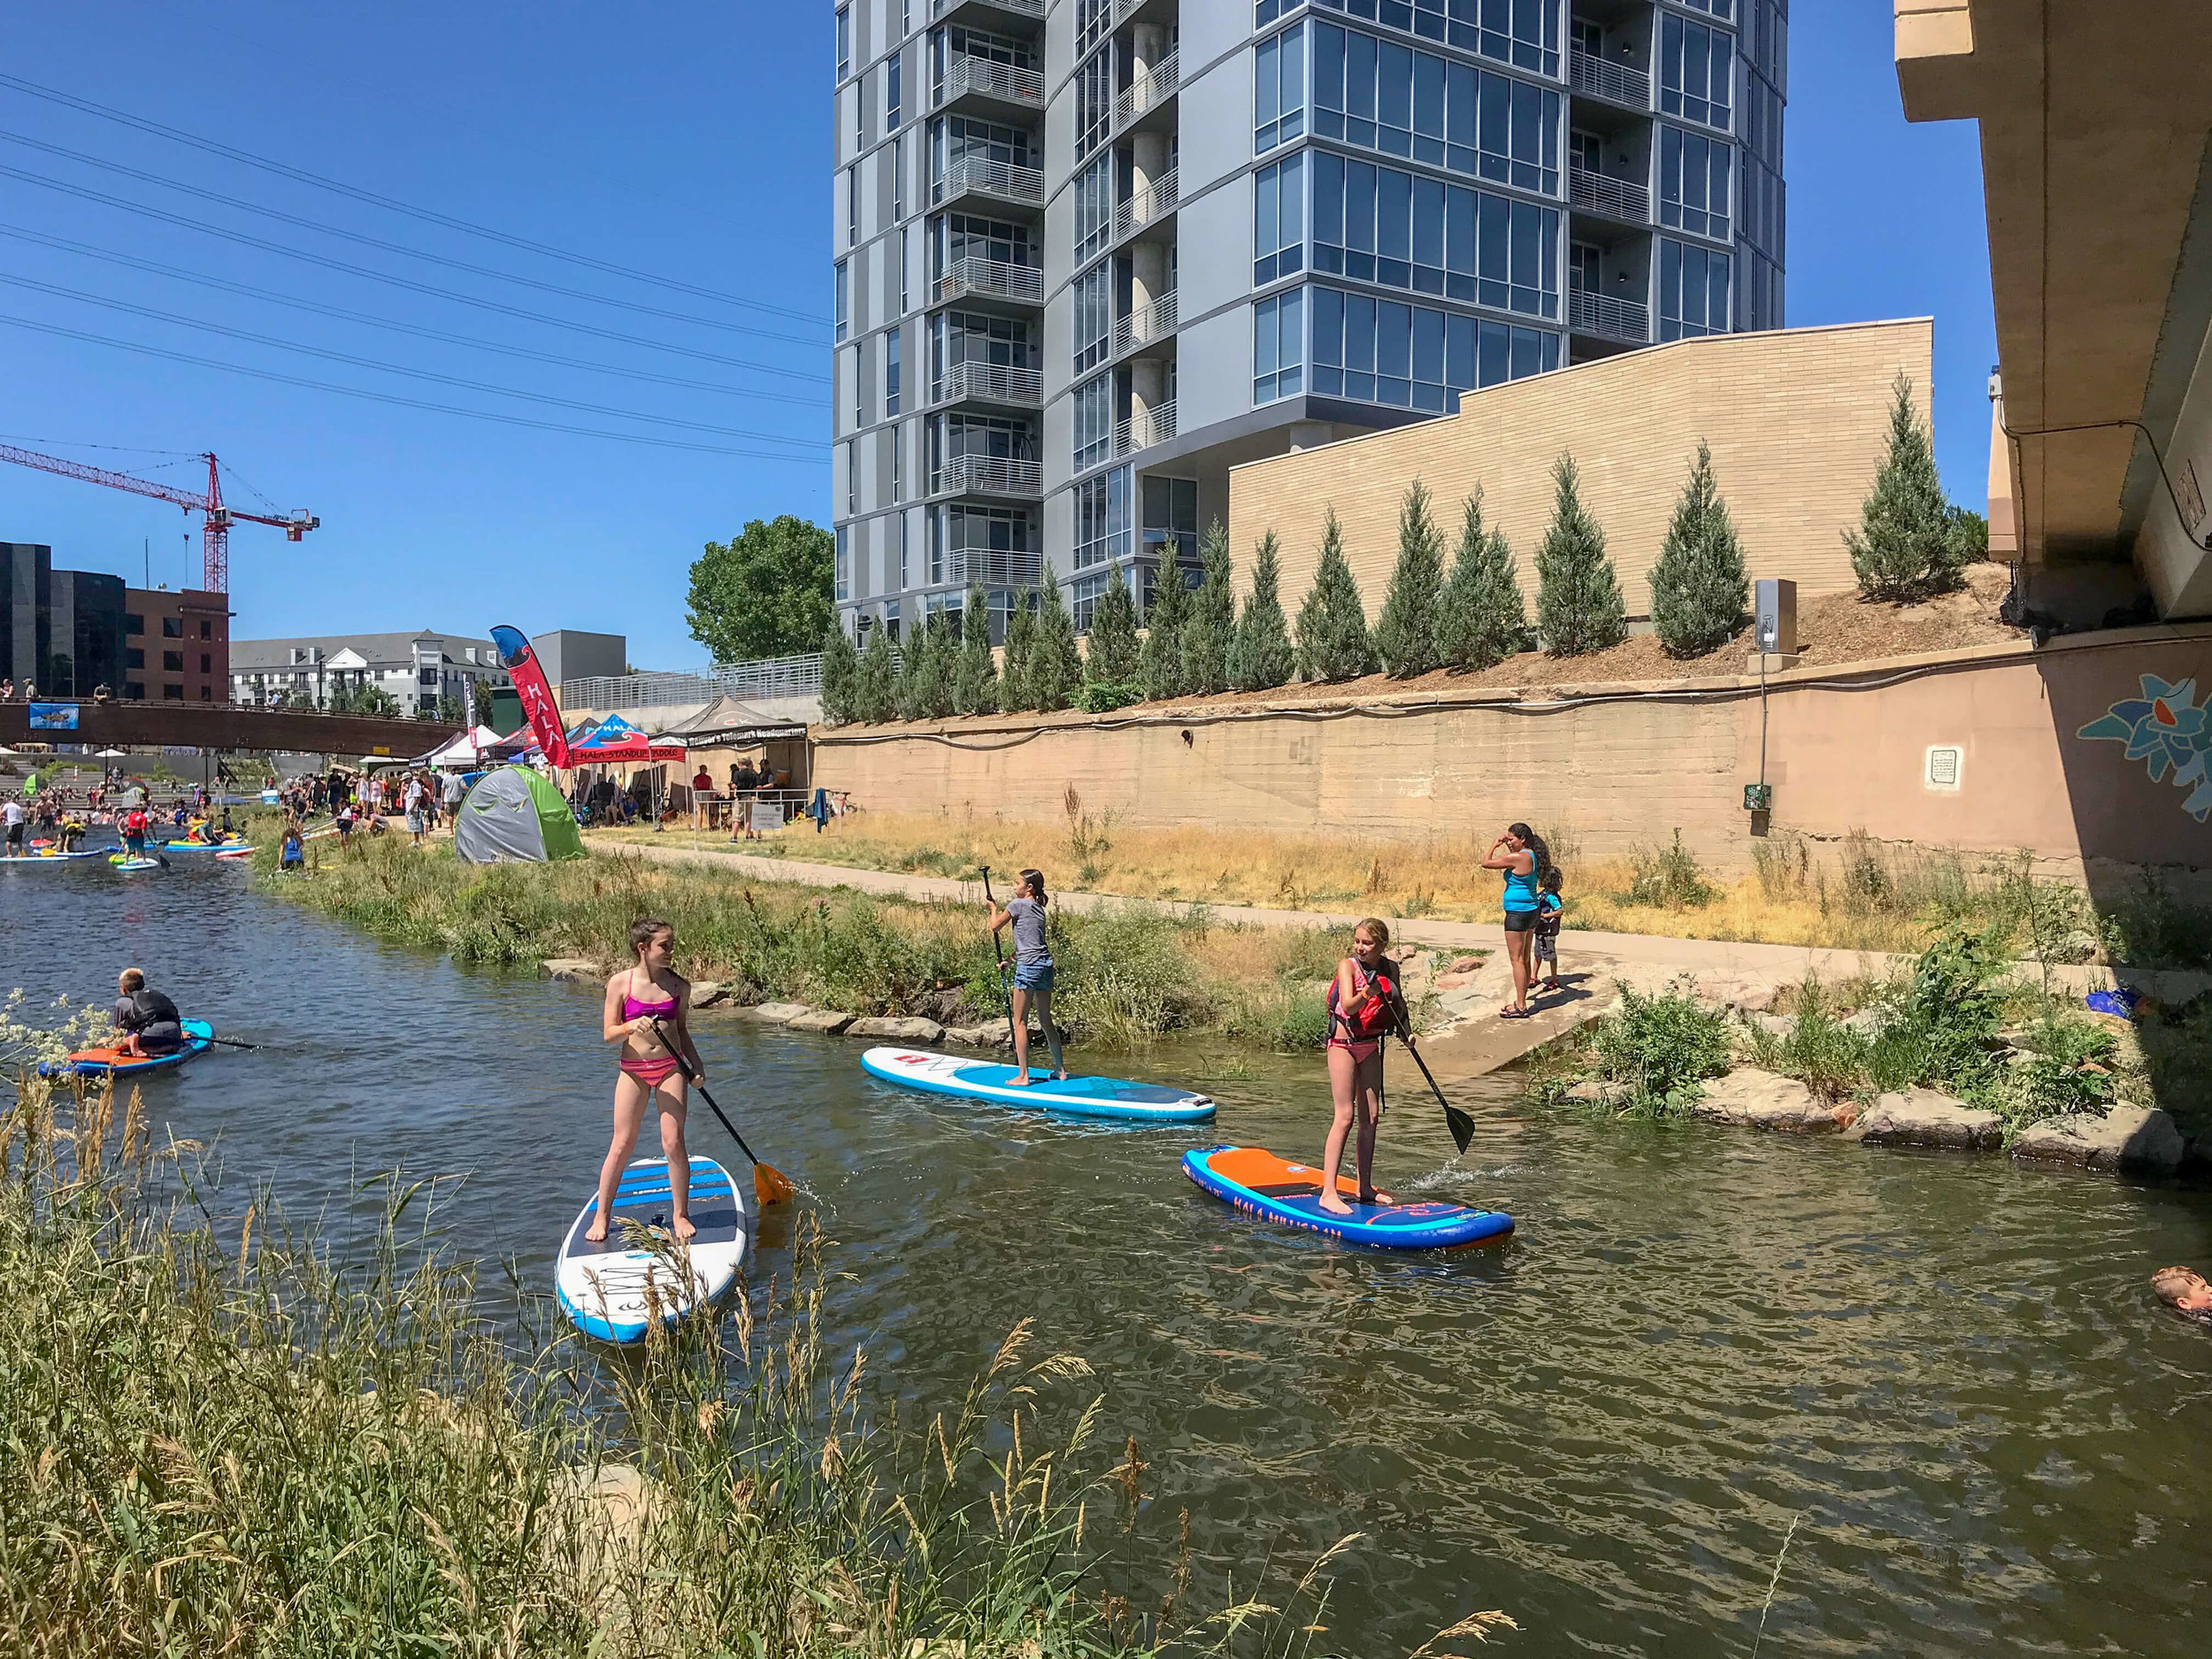 Stand up paddle boarding at Confluence Park